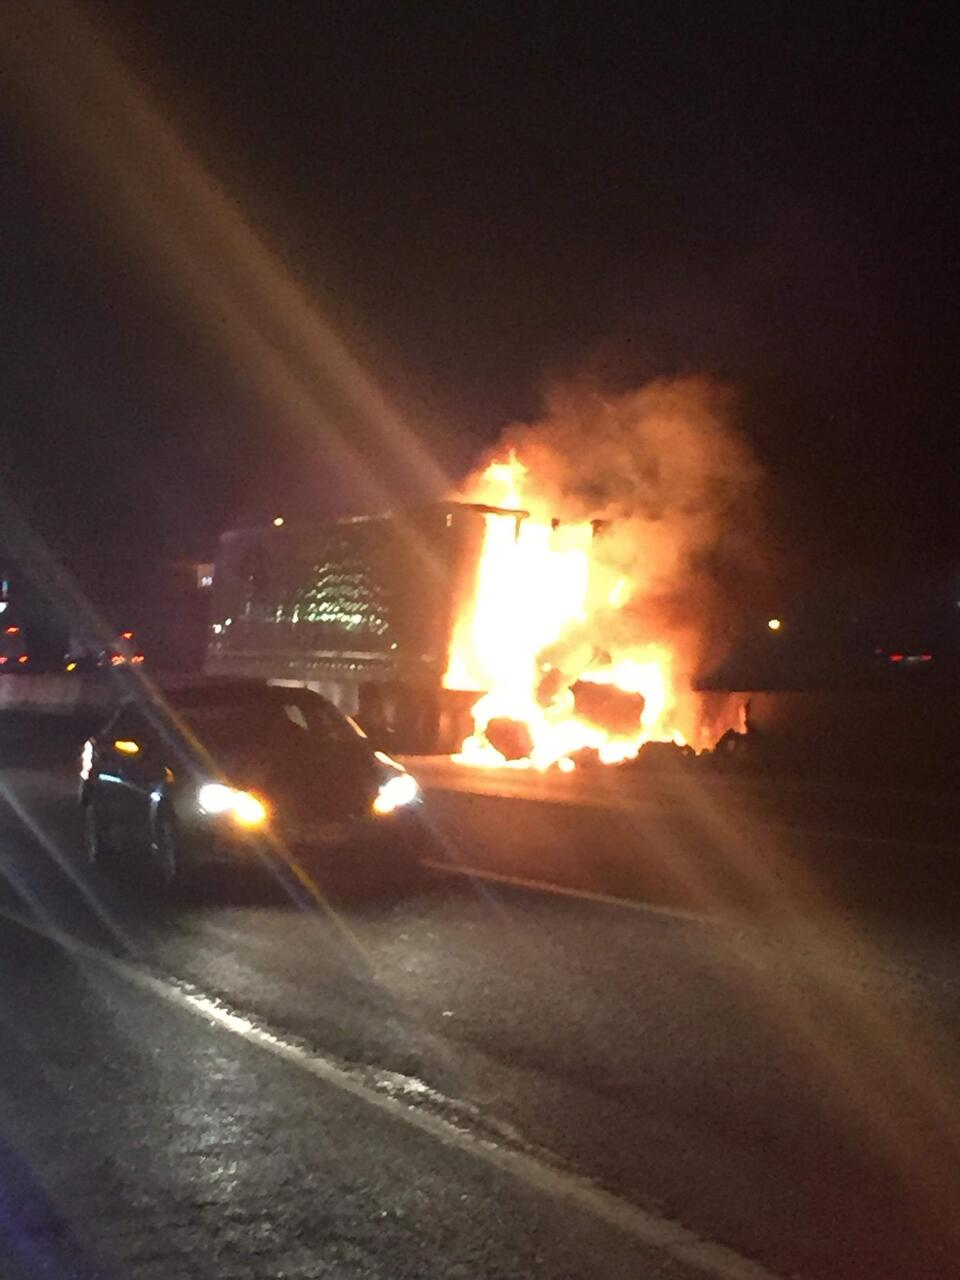 VIDEO: Tractor-Trailer Ignites into Flames After Crash on NJ